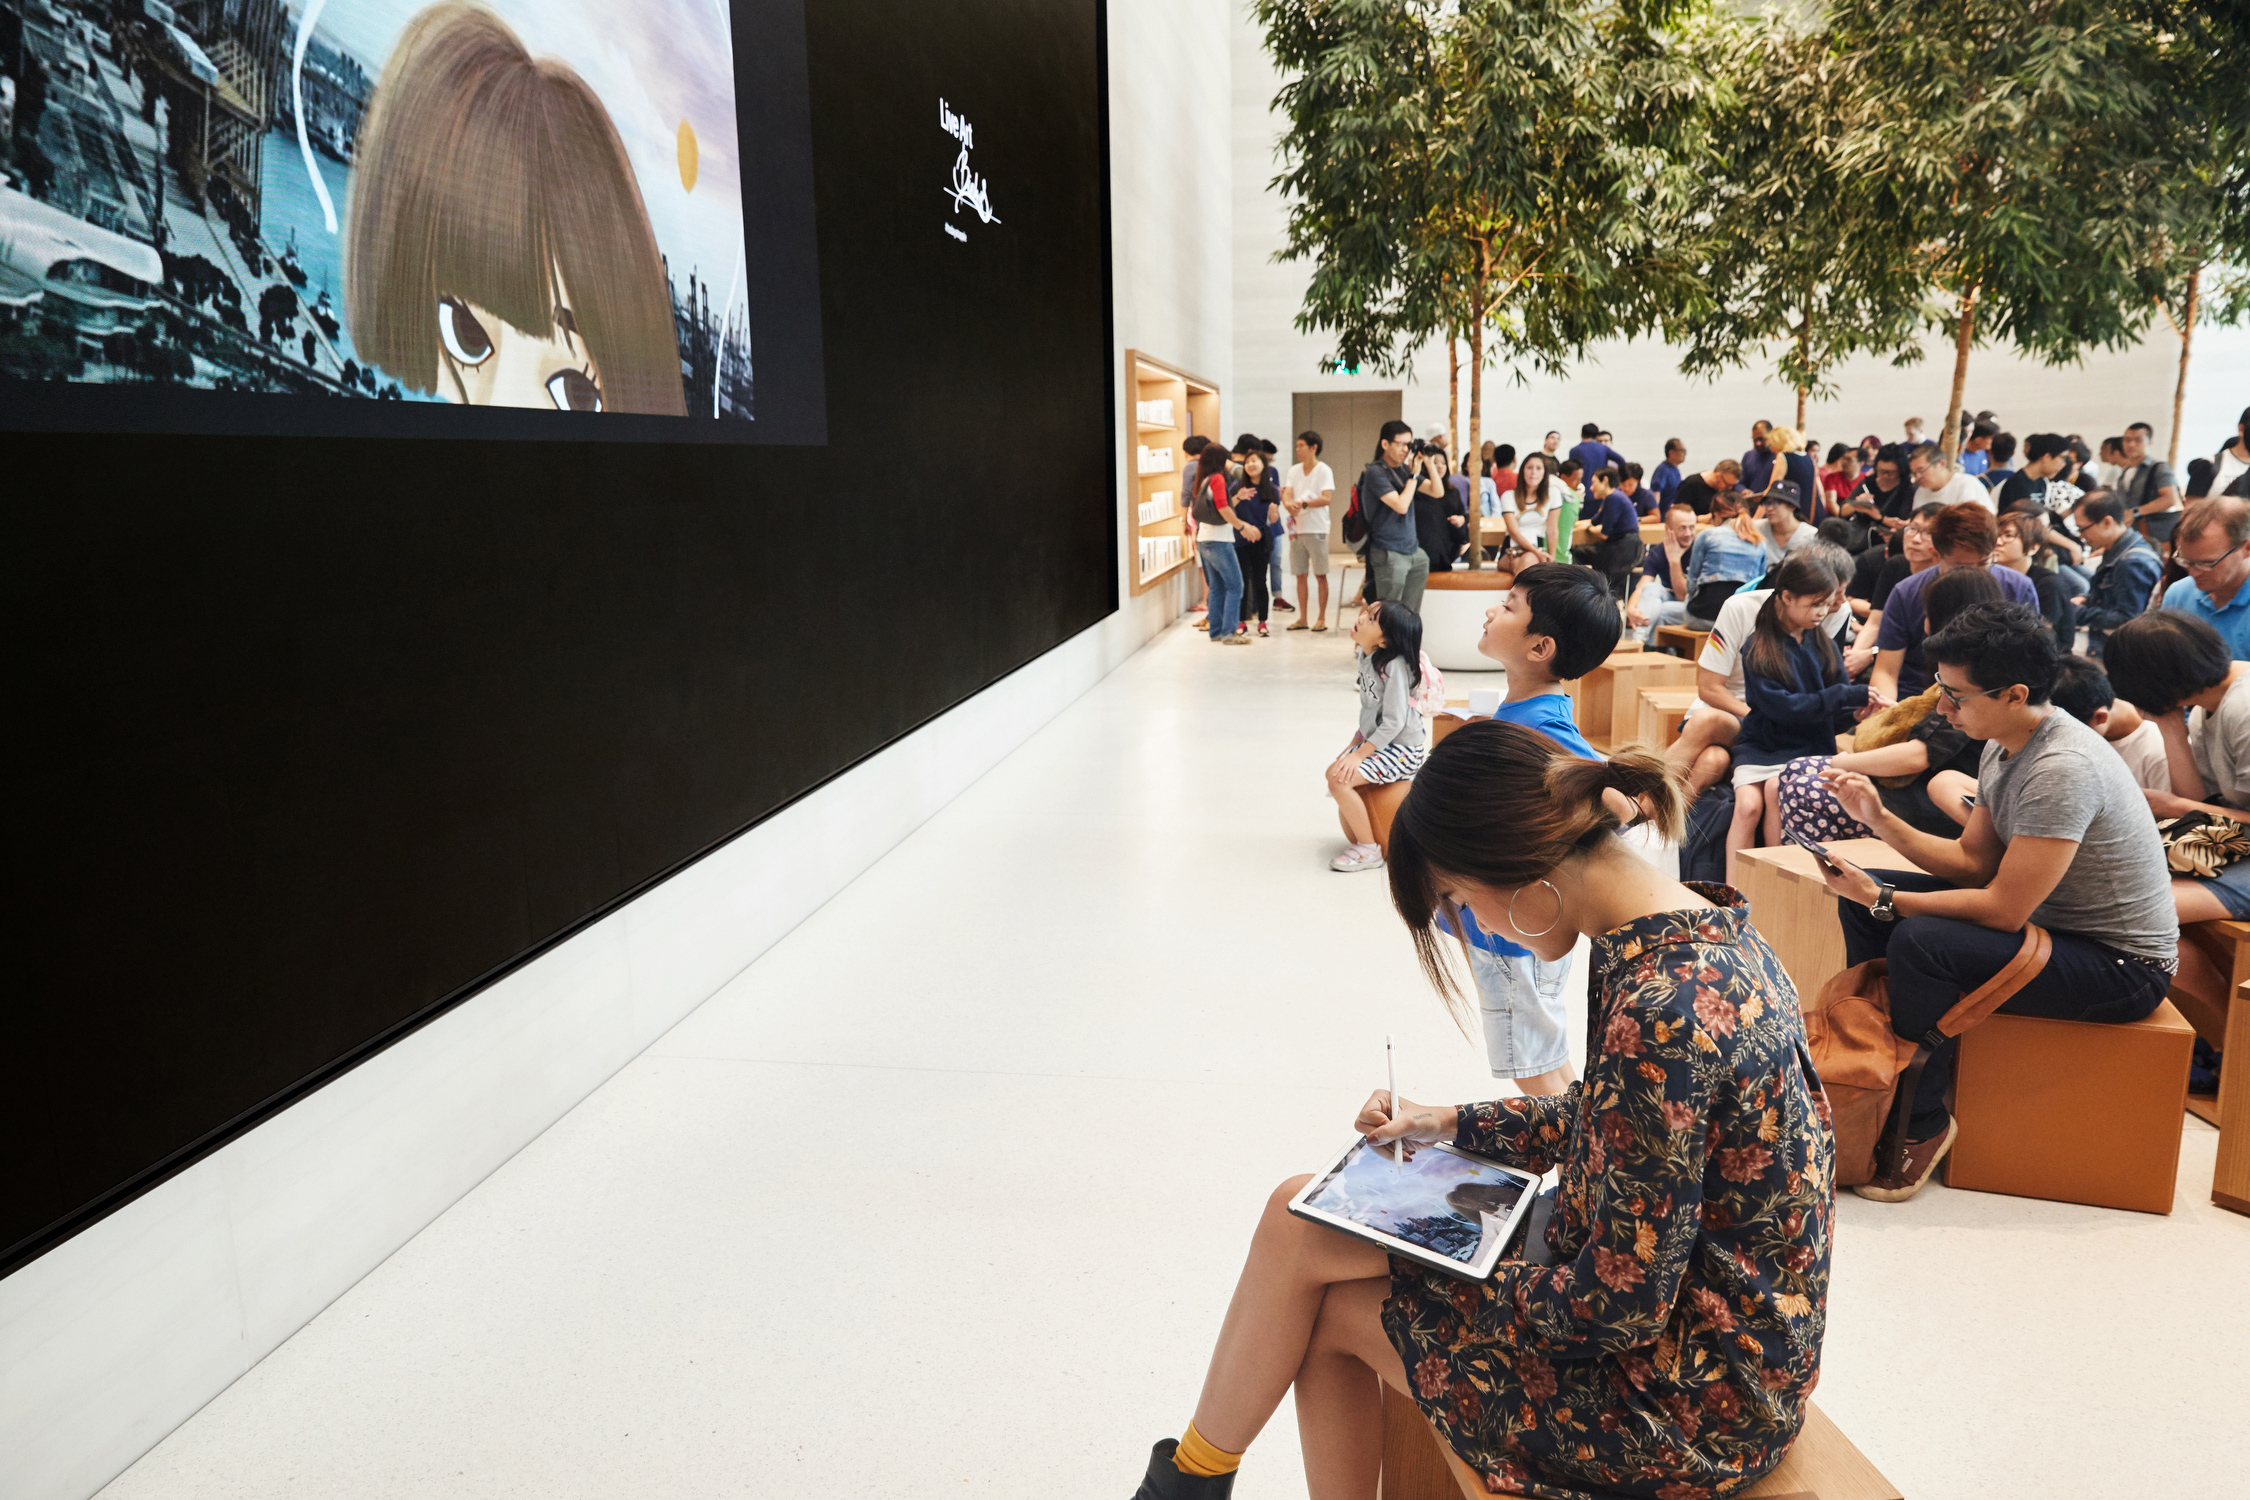 Apple stores have now become modern-day town squares. (Photo: Apple)